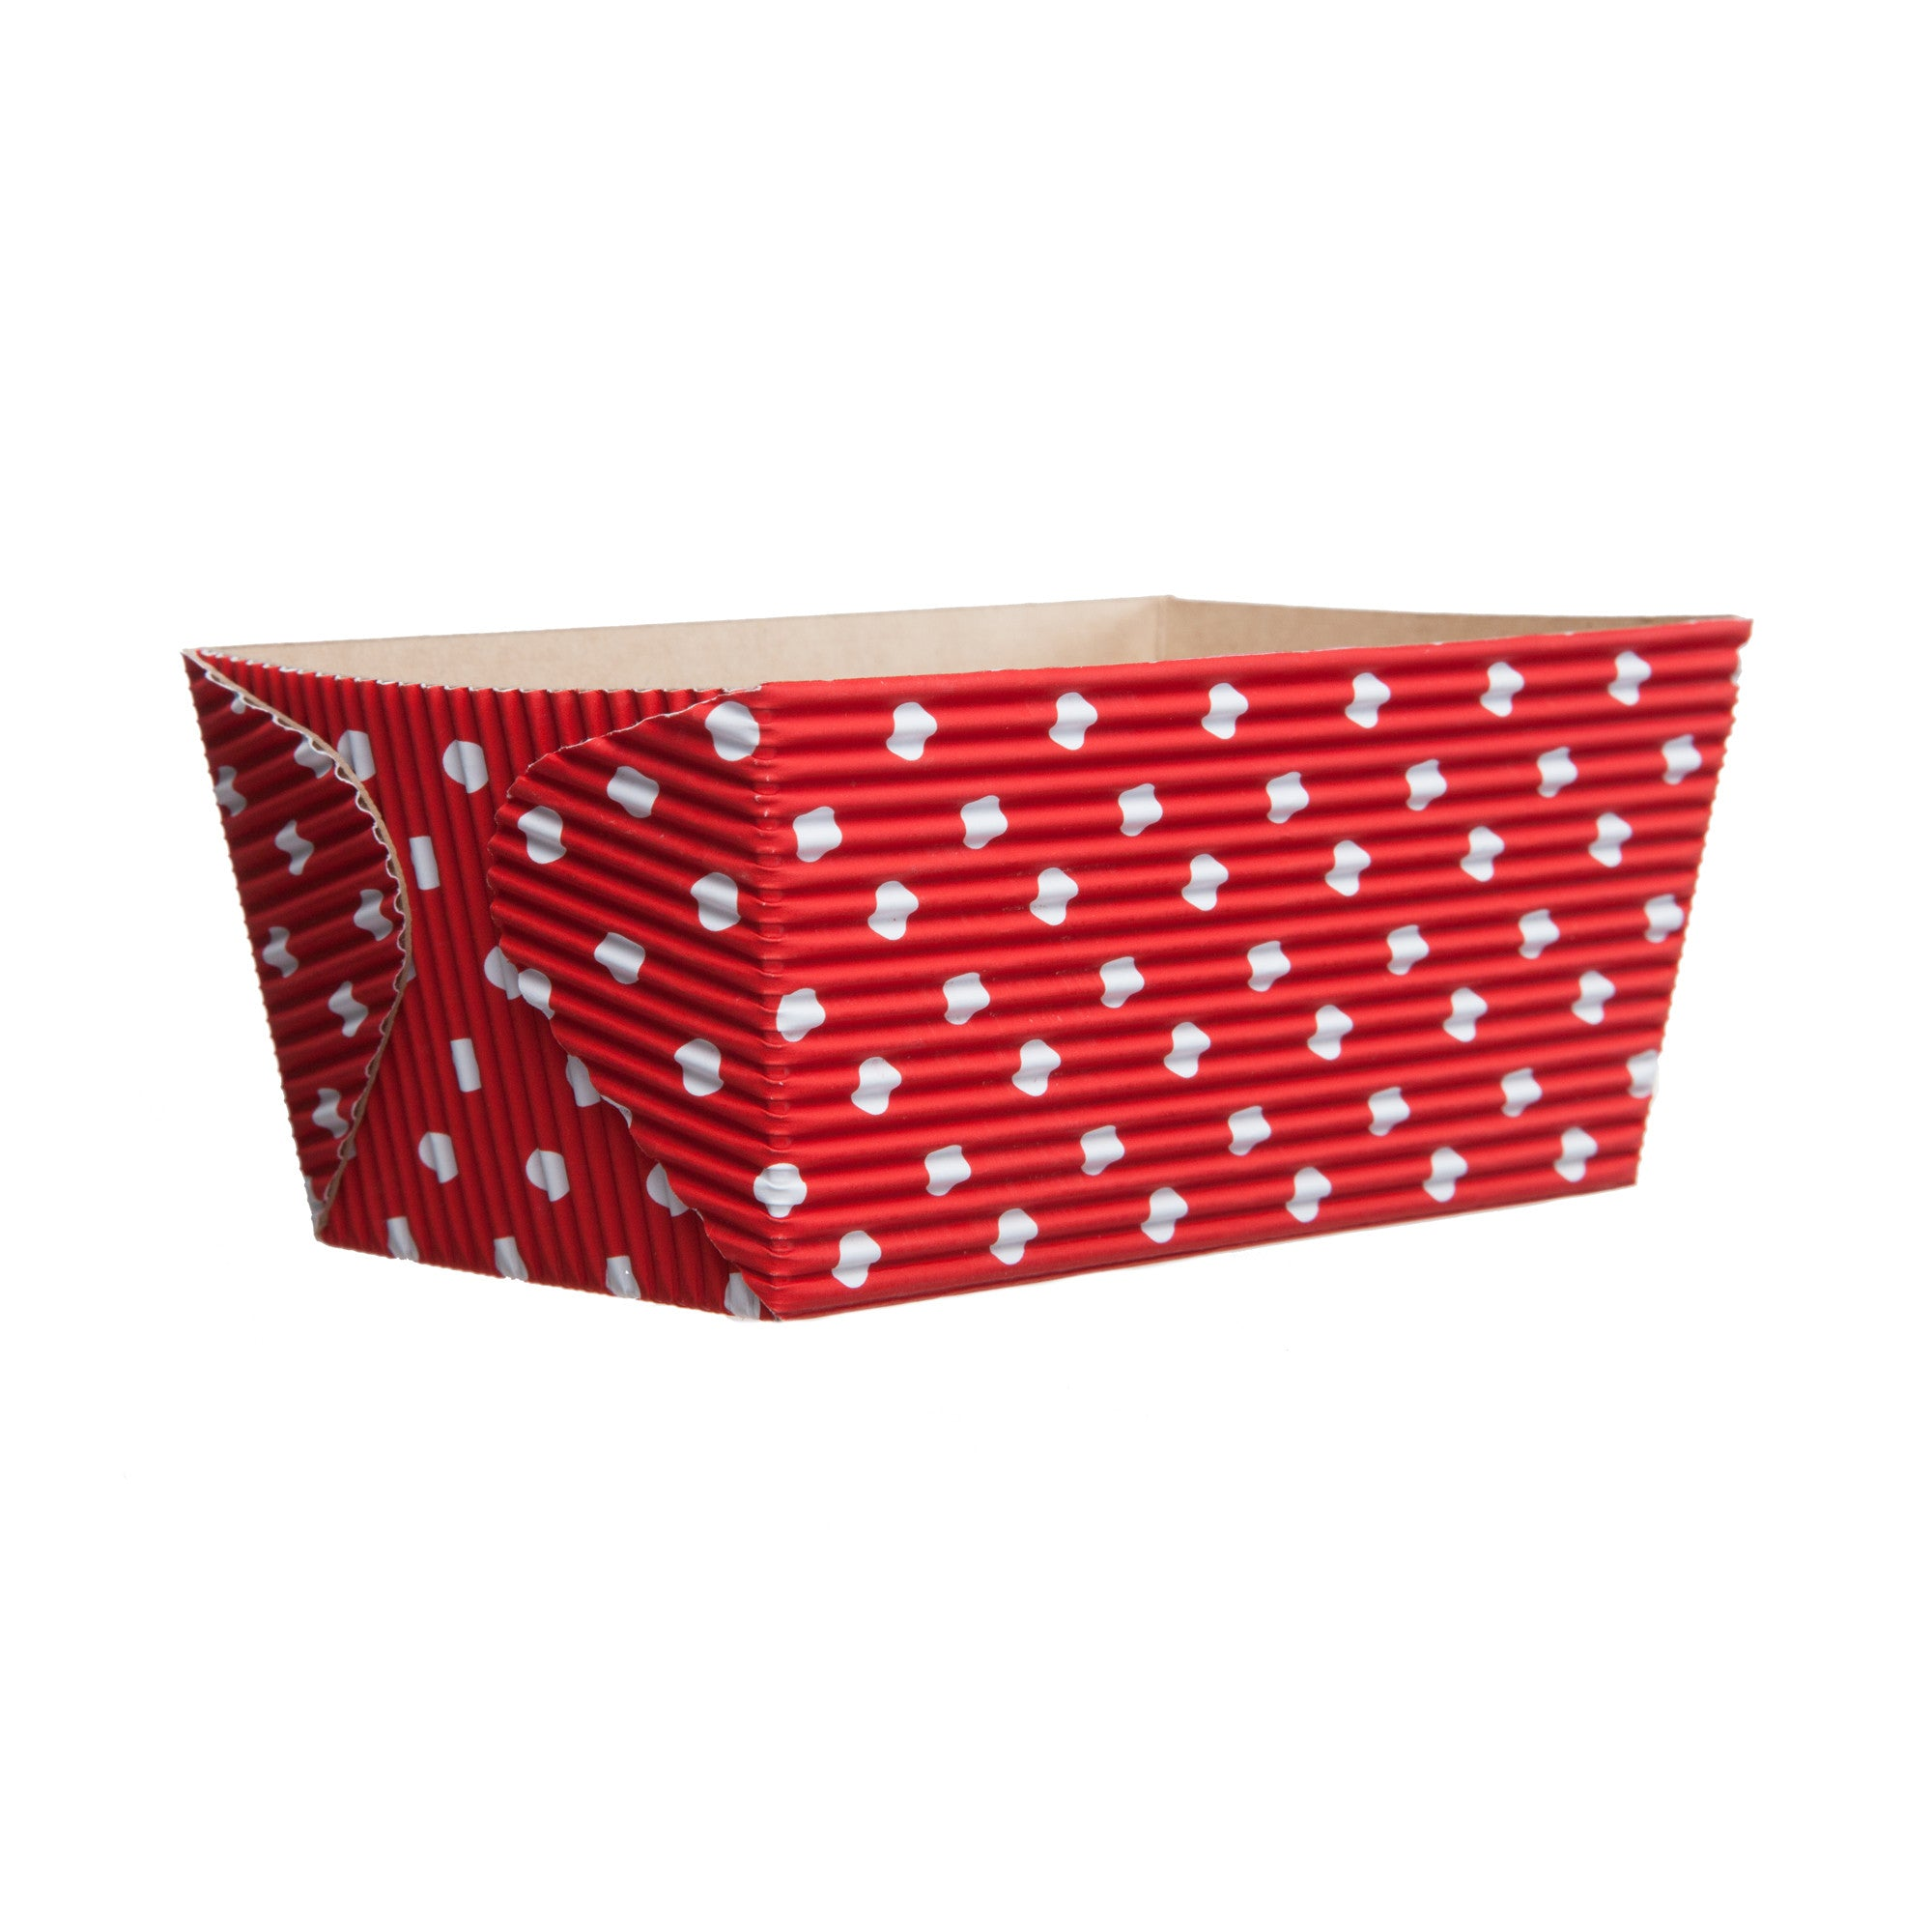 Red with White Dot Set of 30 Welcome Home Brands Ruffled Baking Cups